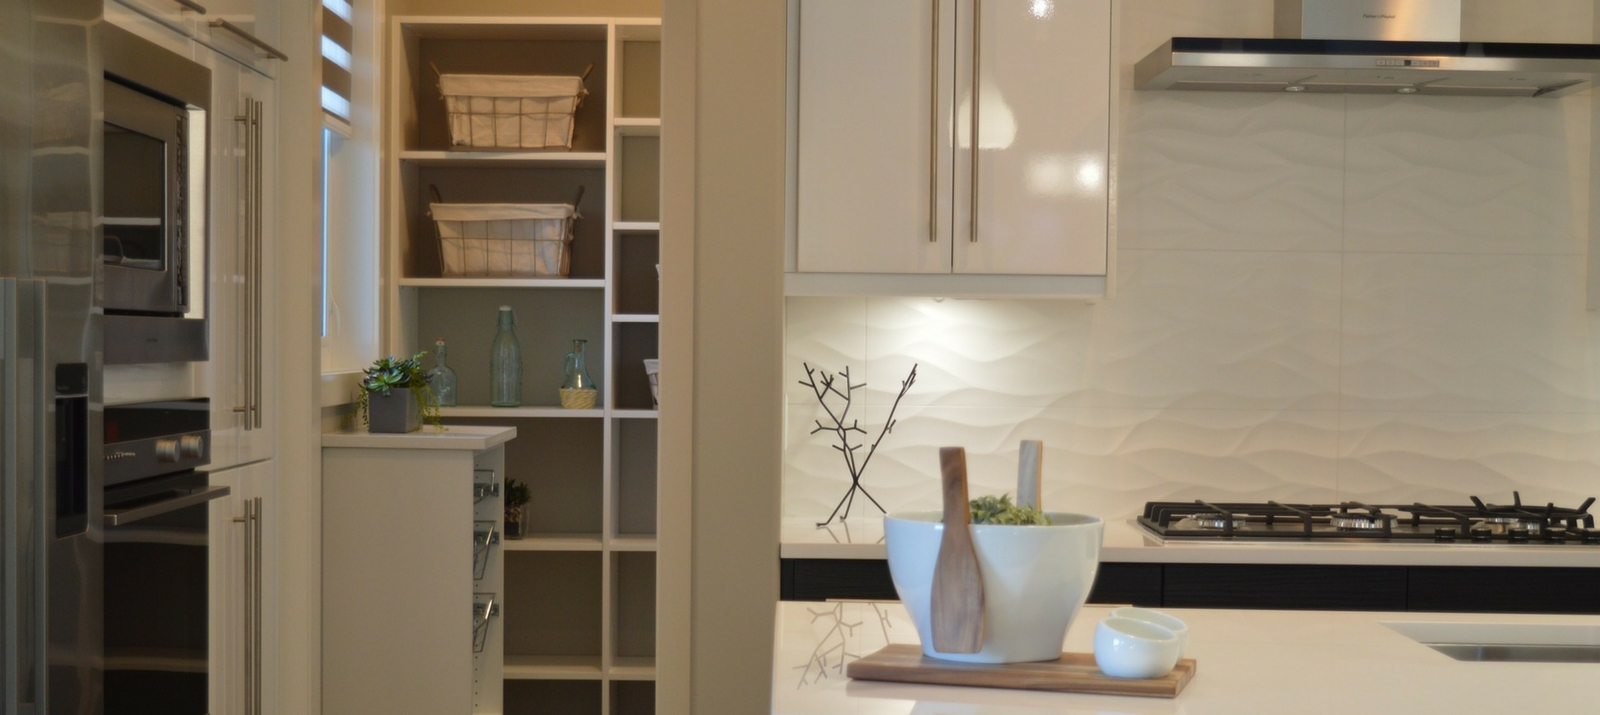 12 next level ways to organize your kitchen cabinets drawers and pantry